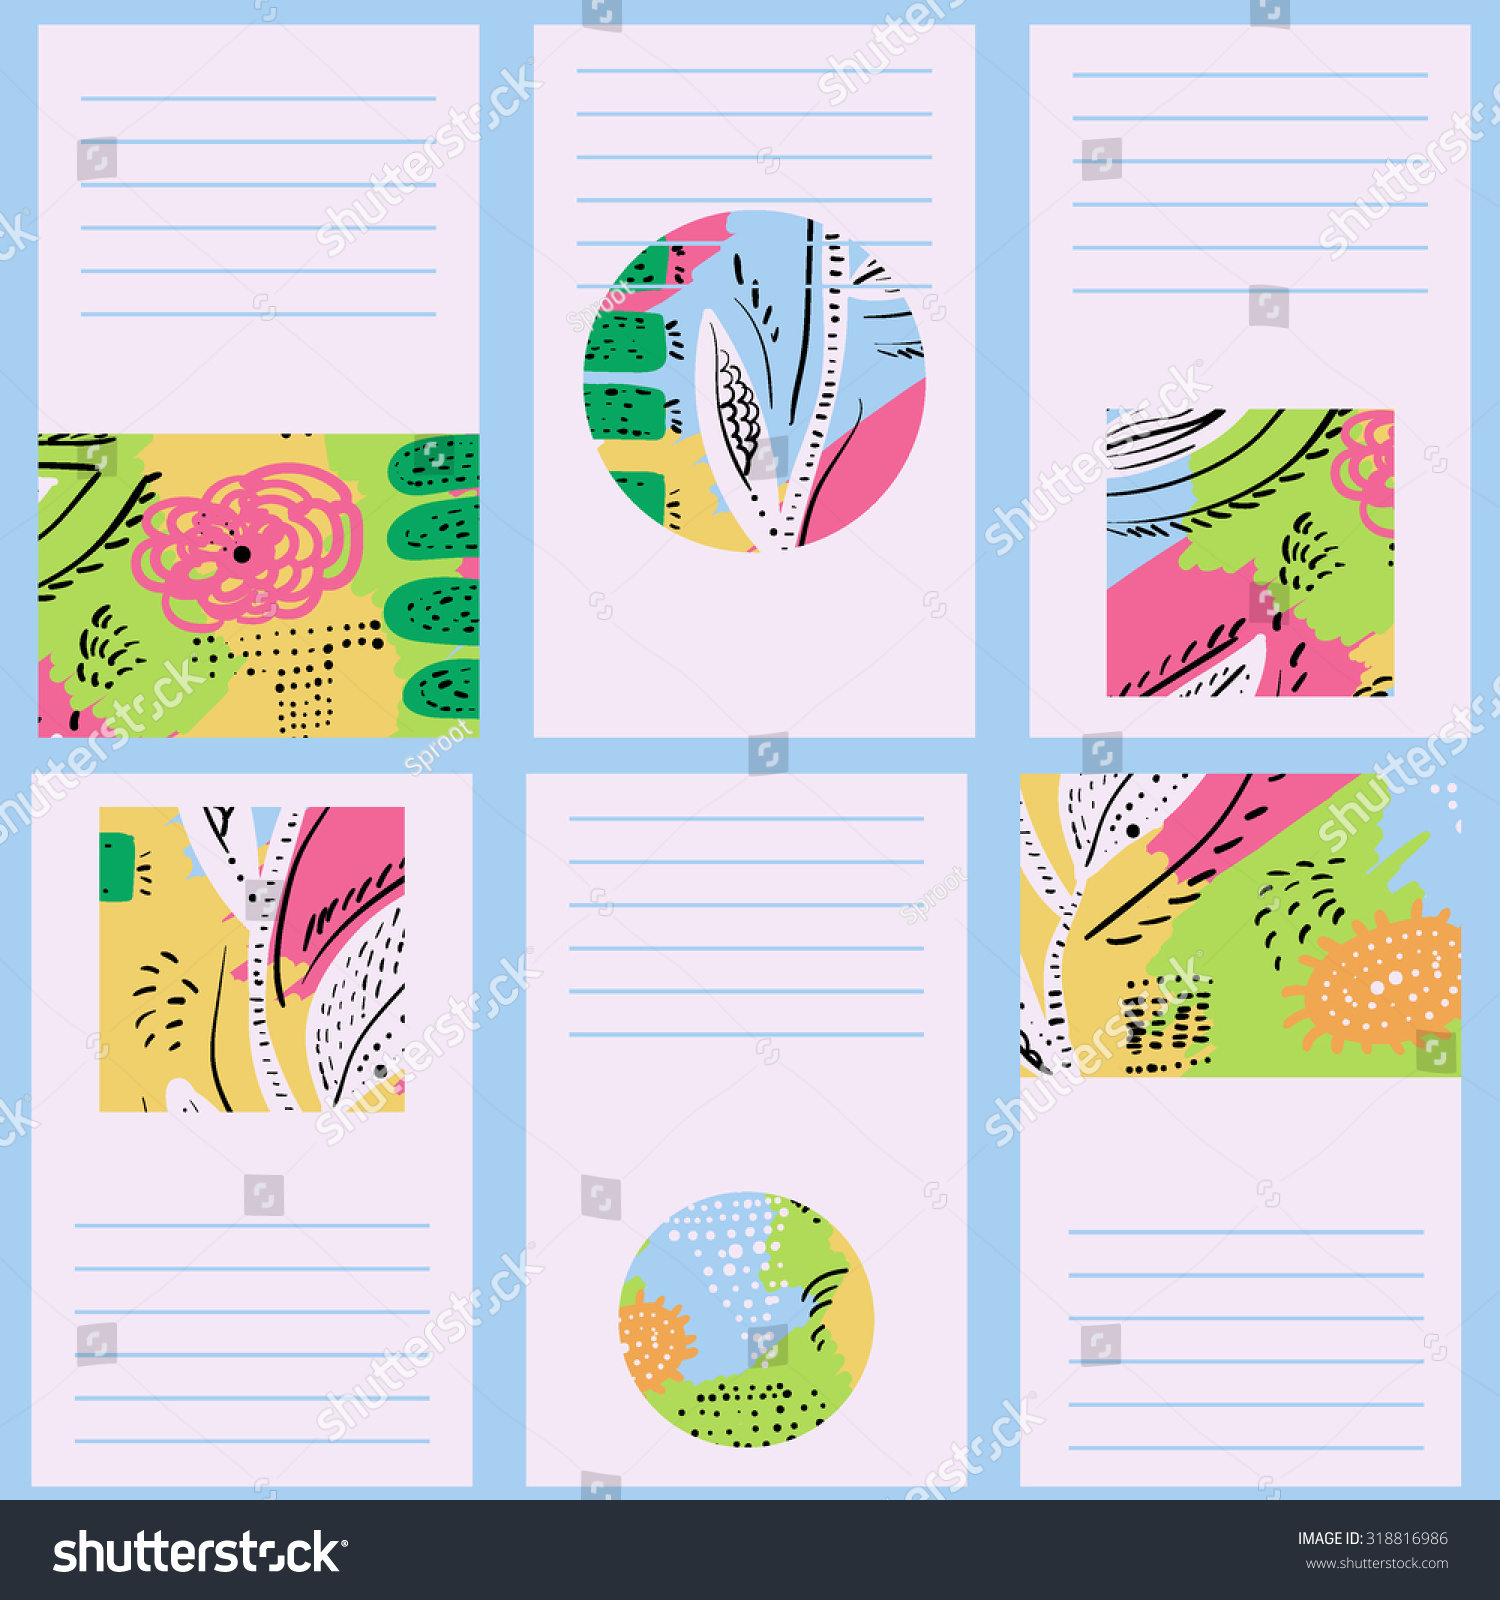 Set 6 creative cards hand drawn stock vector 318816986 shutterstock set of 6 creative cards hand drawn doodle textures birthday wedding invitation magicingreecefo Choice Image